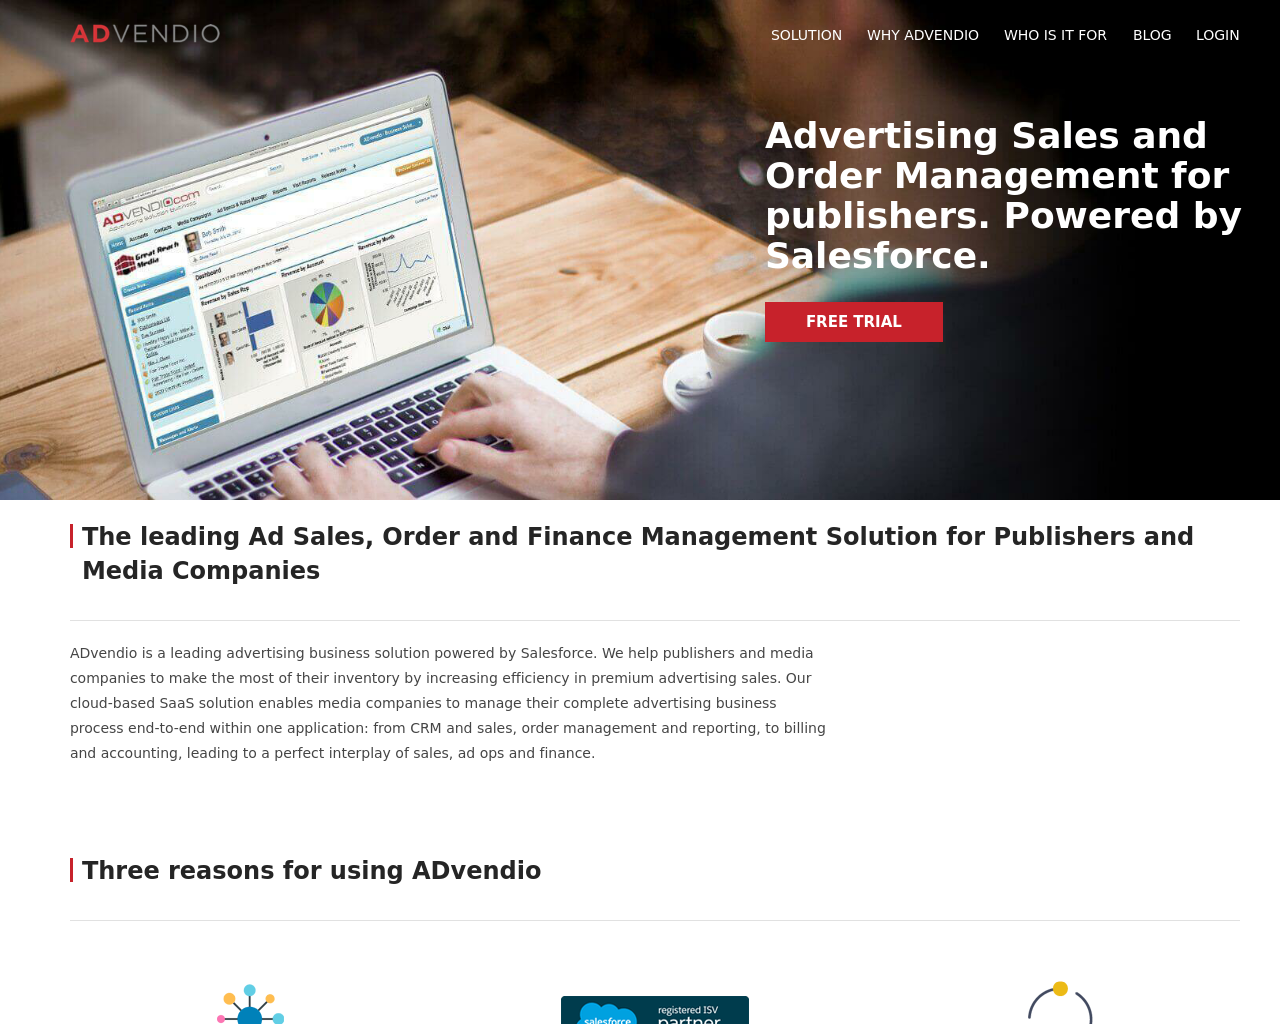 Advendio-Advertising-Reviews-Pricing